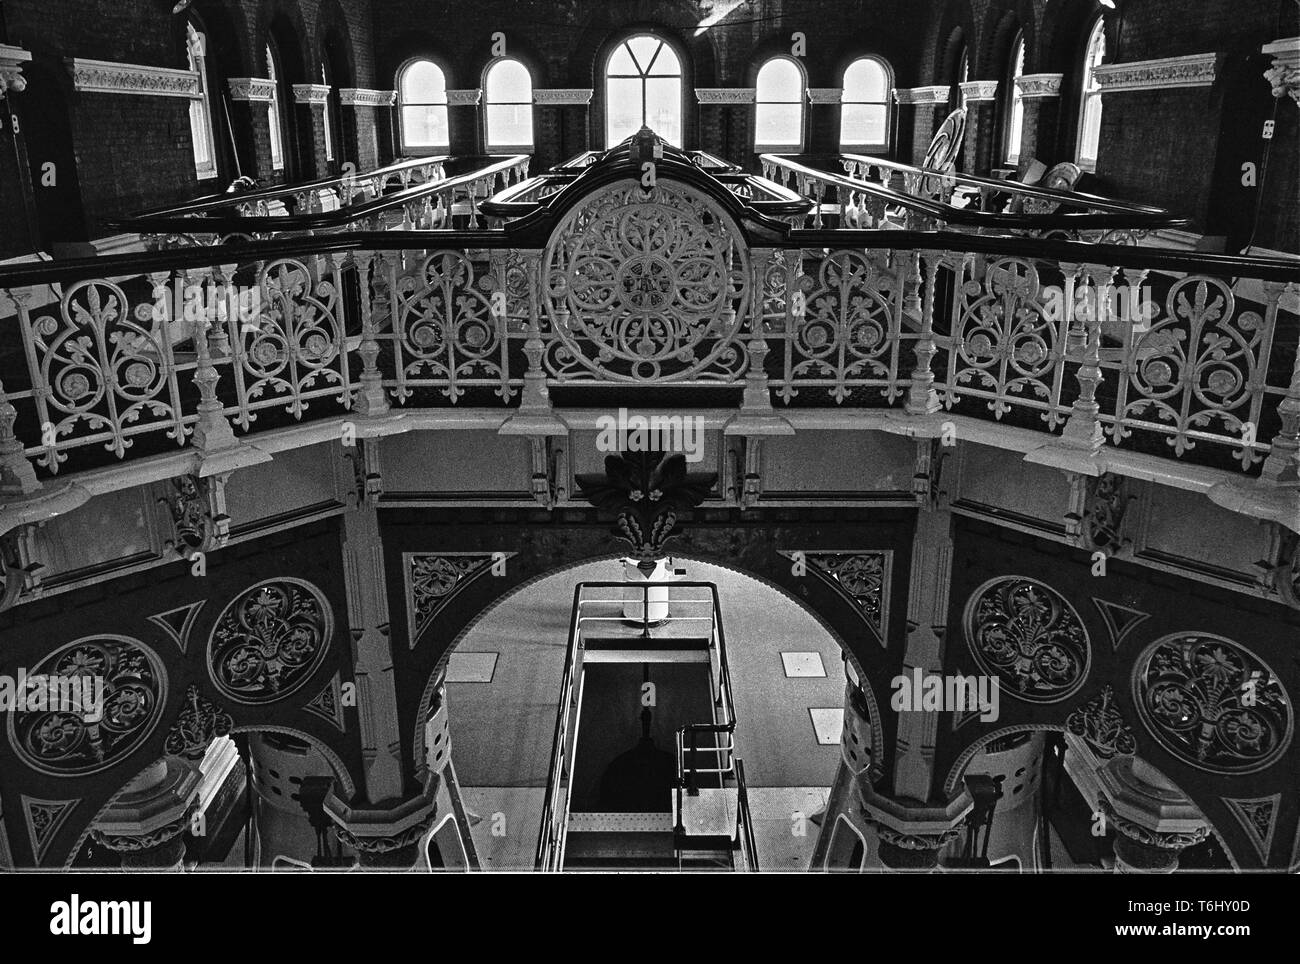 7/7  Tower Hamlets Abbey Mills Pumping Station 1979.nef - Stock Image